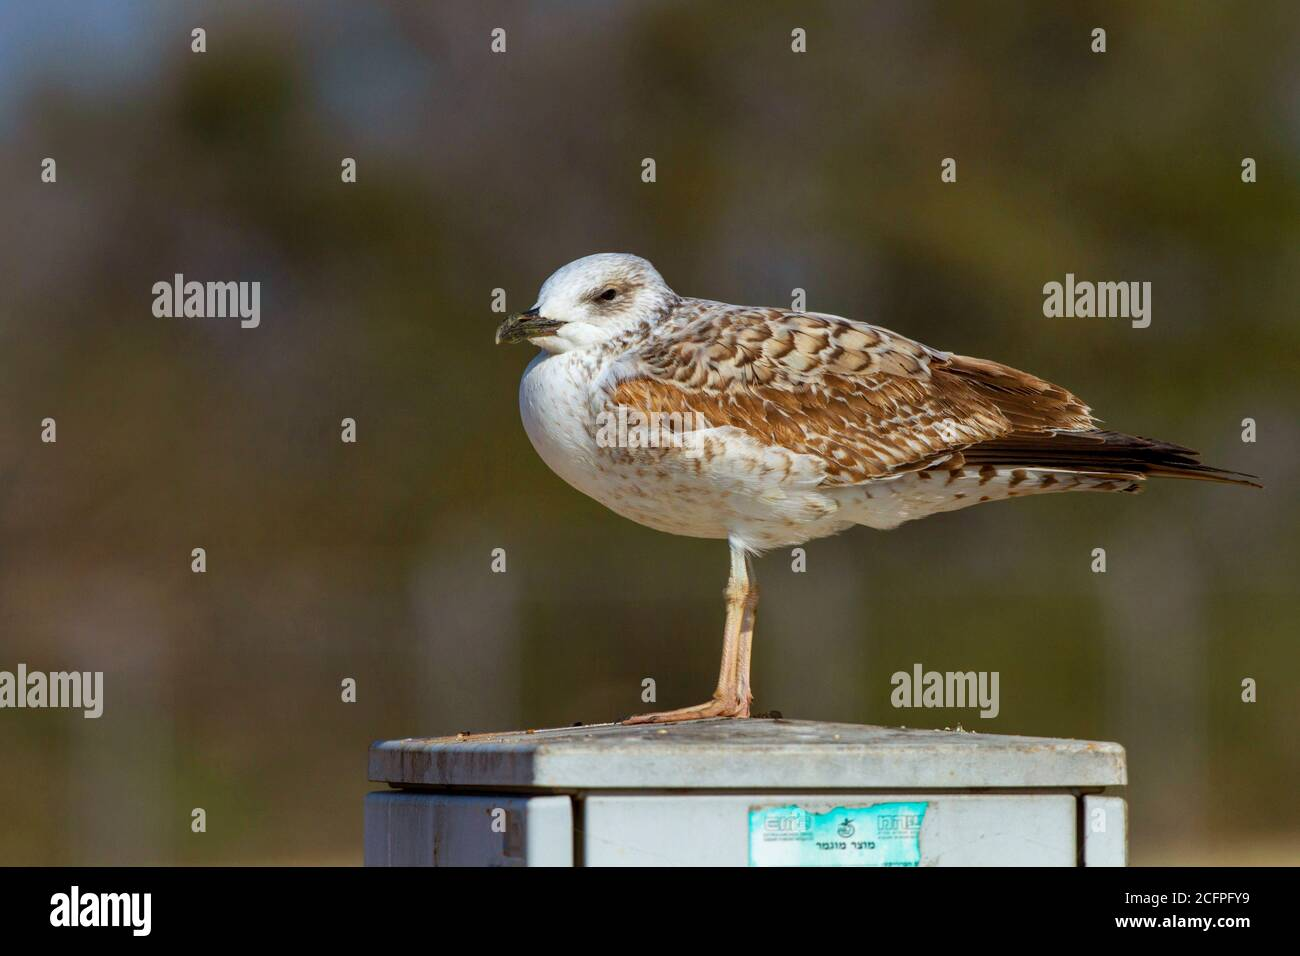 Armenian gull (Larus armenicus), immature perching on a junction box, side view, Israel Stock Photo